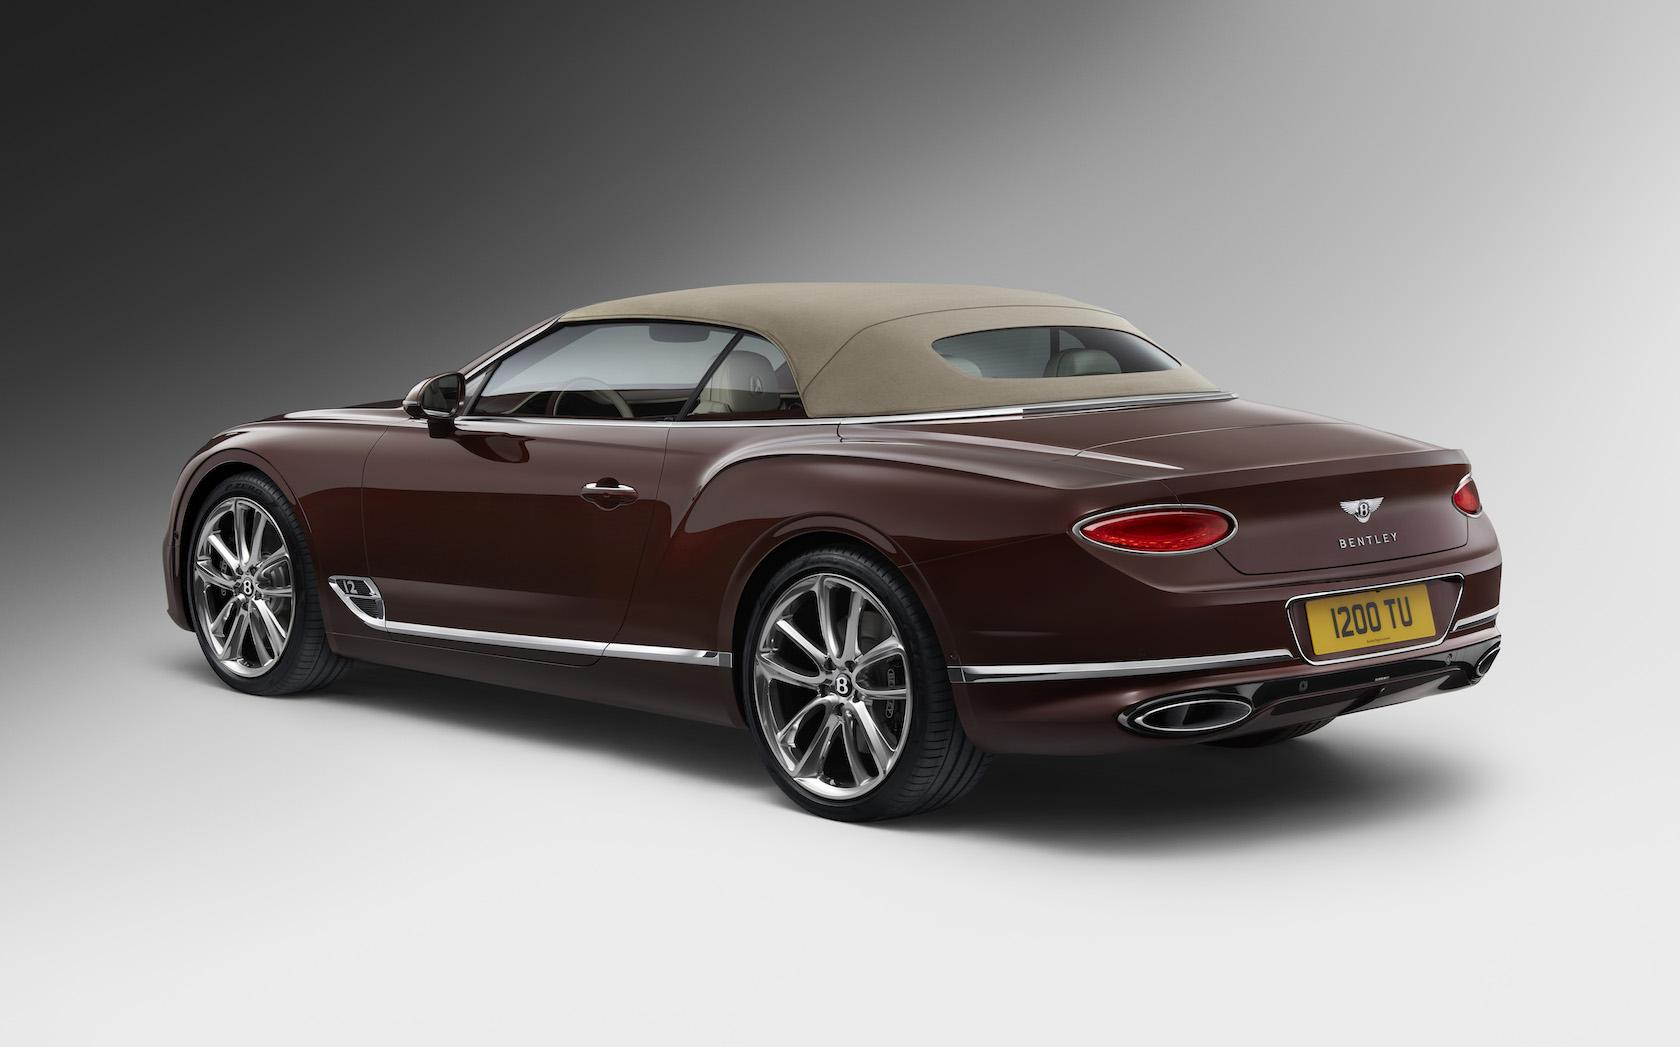 Bentley Continental Gt Convertible Gallery Slashgear